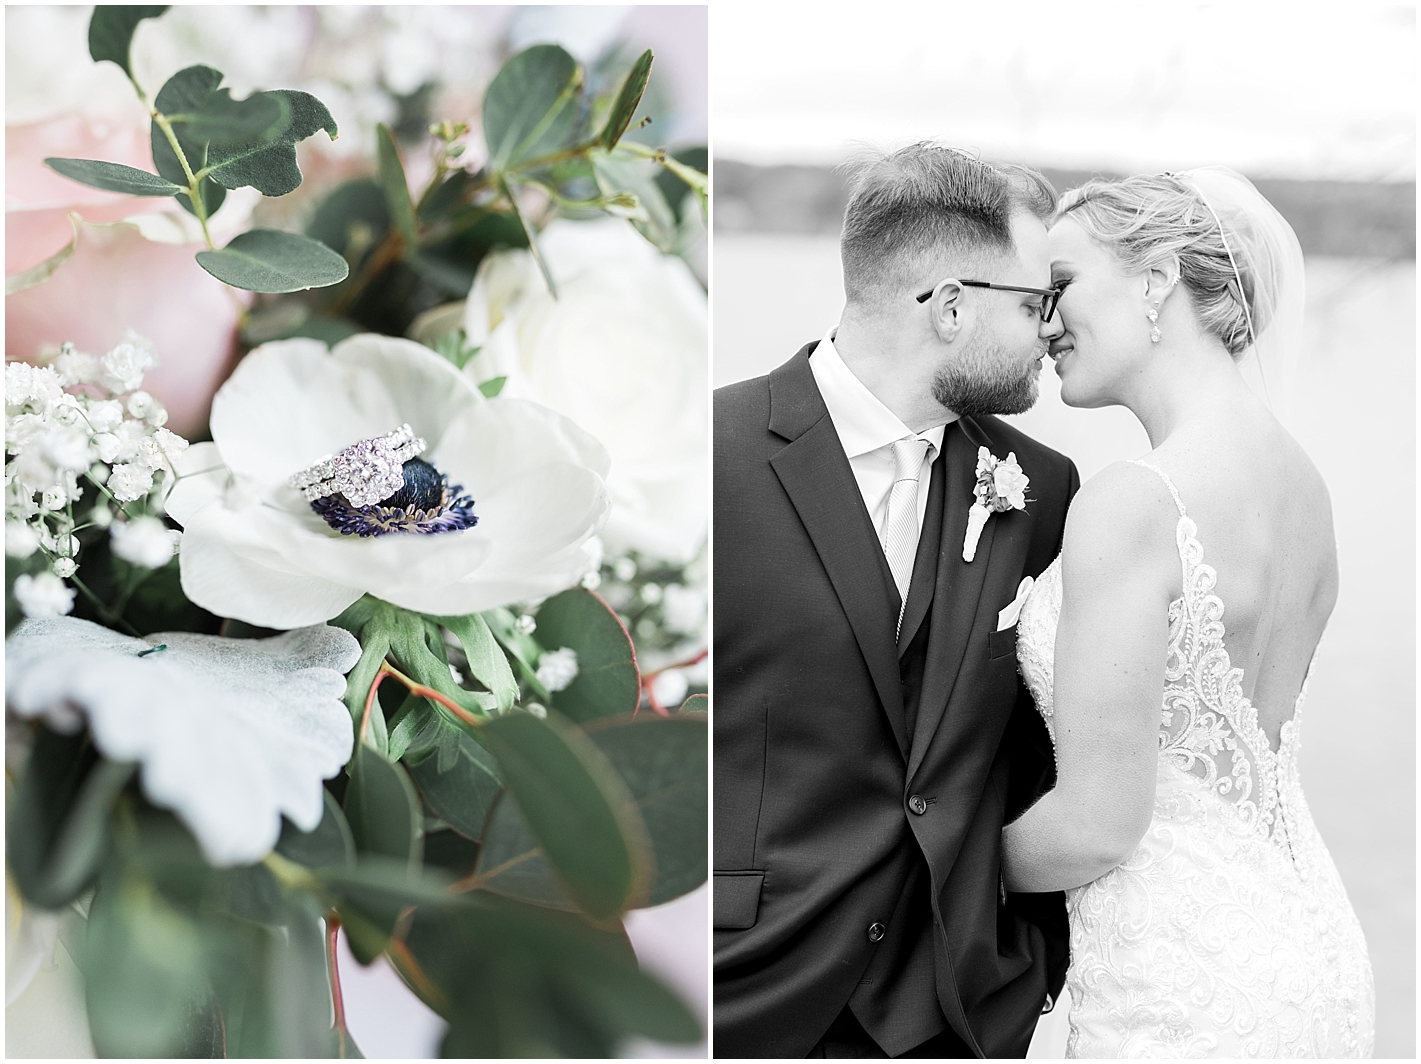 Romantic Wedding Couples Portrait Black and White Photos by Alyssa Parker Photography